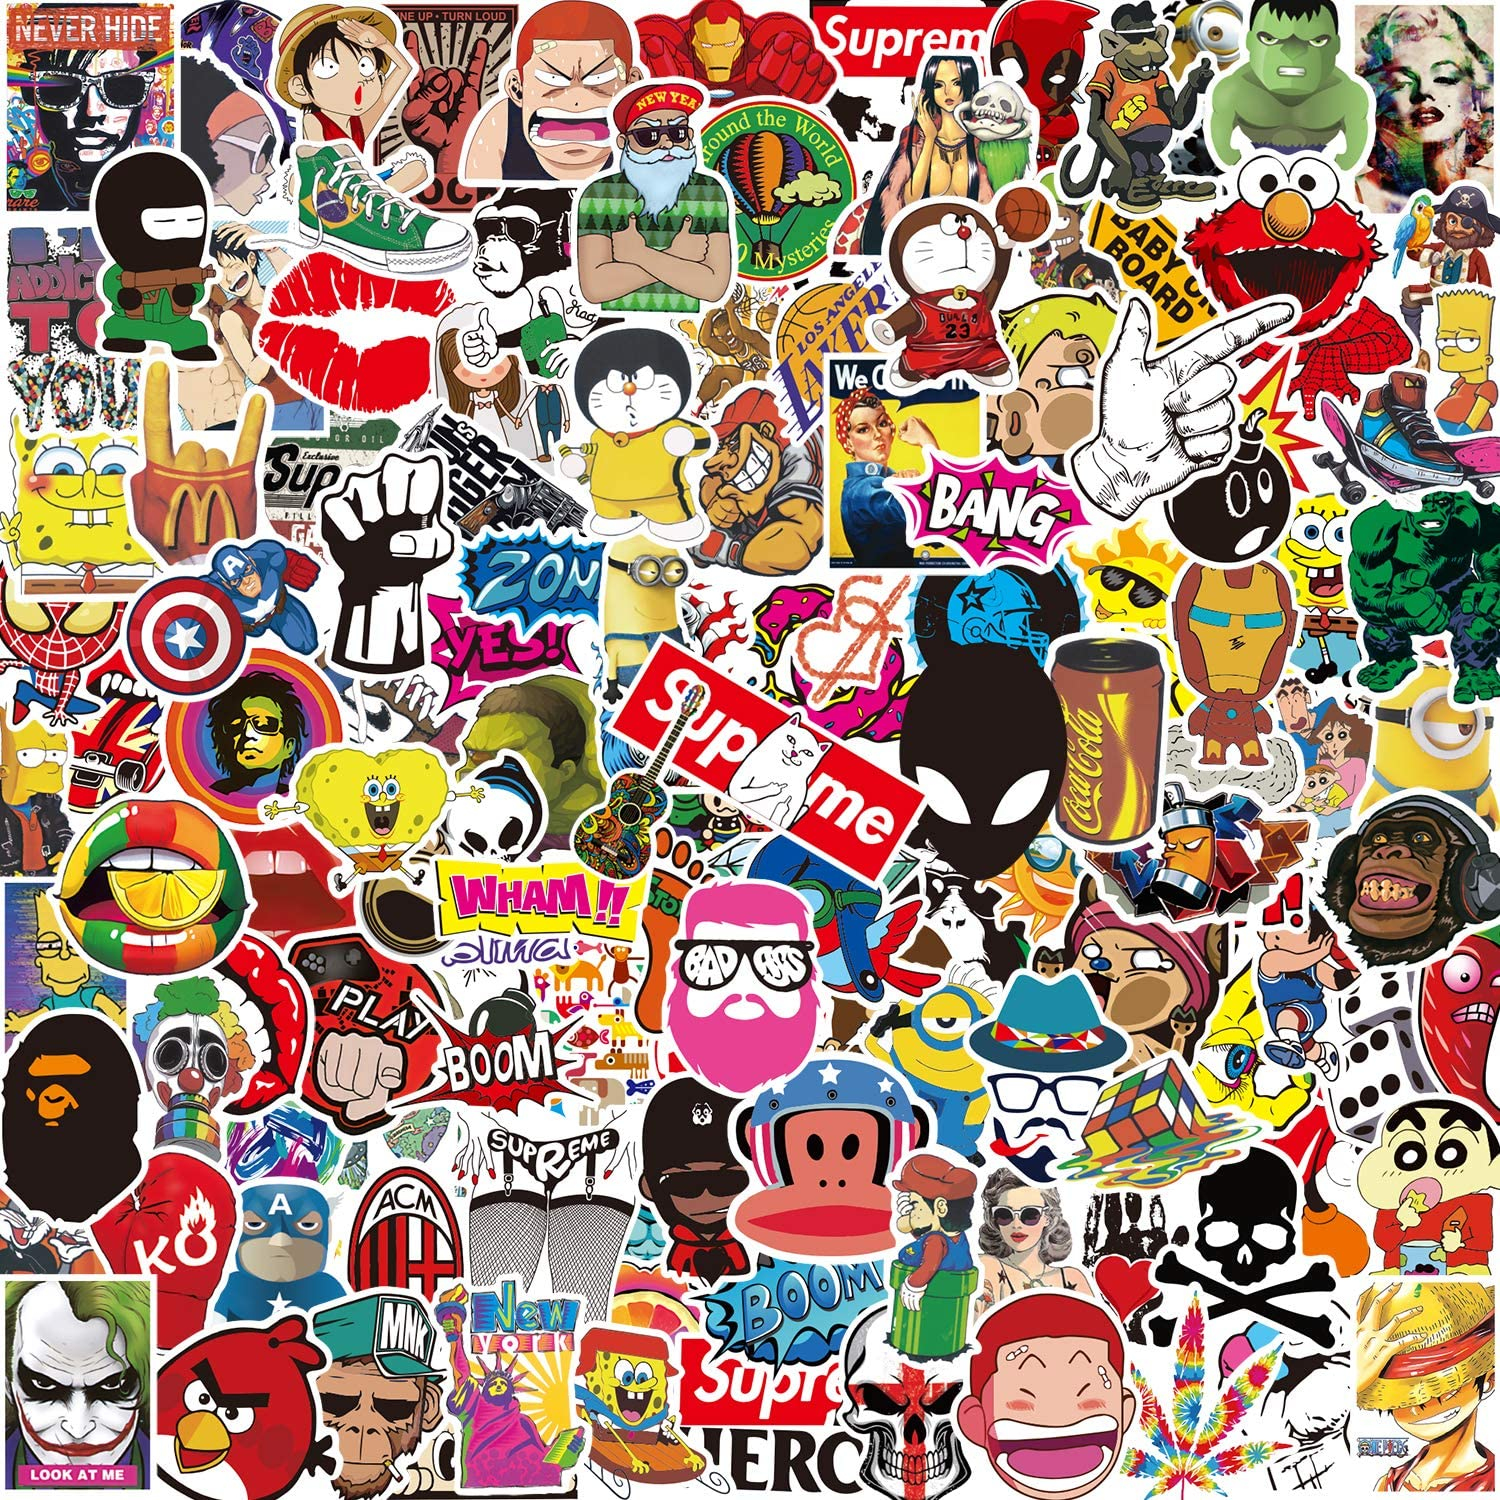 Pack Pegatinas [150-PCS],Q-Window Stickers Vinilo Graffiti Calcomanías Pegatina para Coche Moto Infantiles Pared Teclado IPhone Ps4 Niños Bicicleta Ordenador Equipaje Snowboard Macbook Xbox One bomb